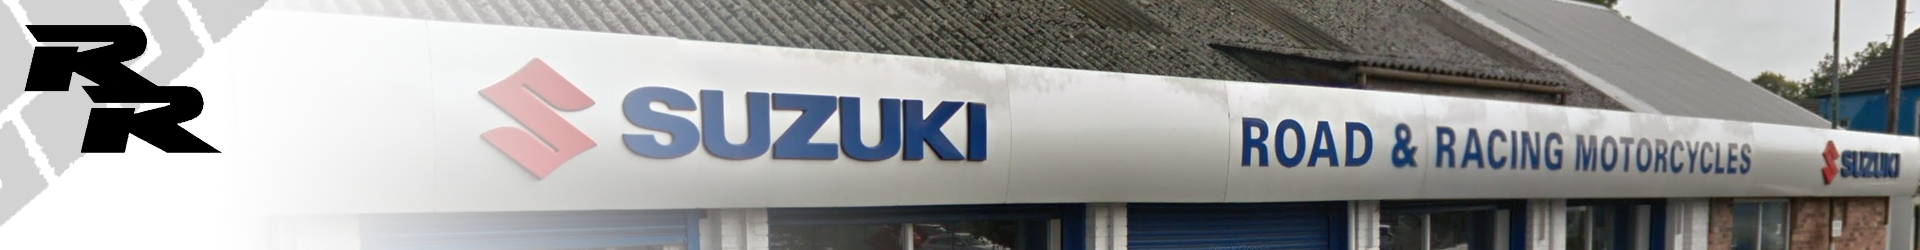 Suzuki UK110 Address